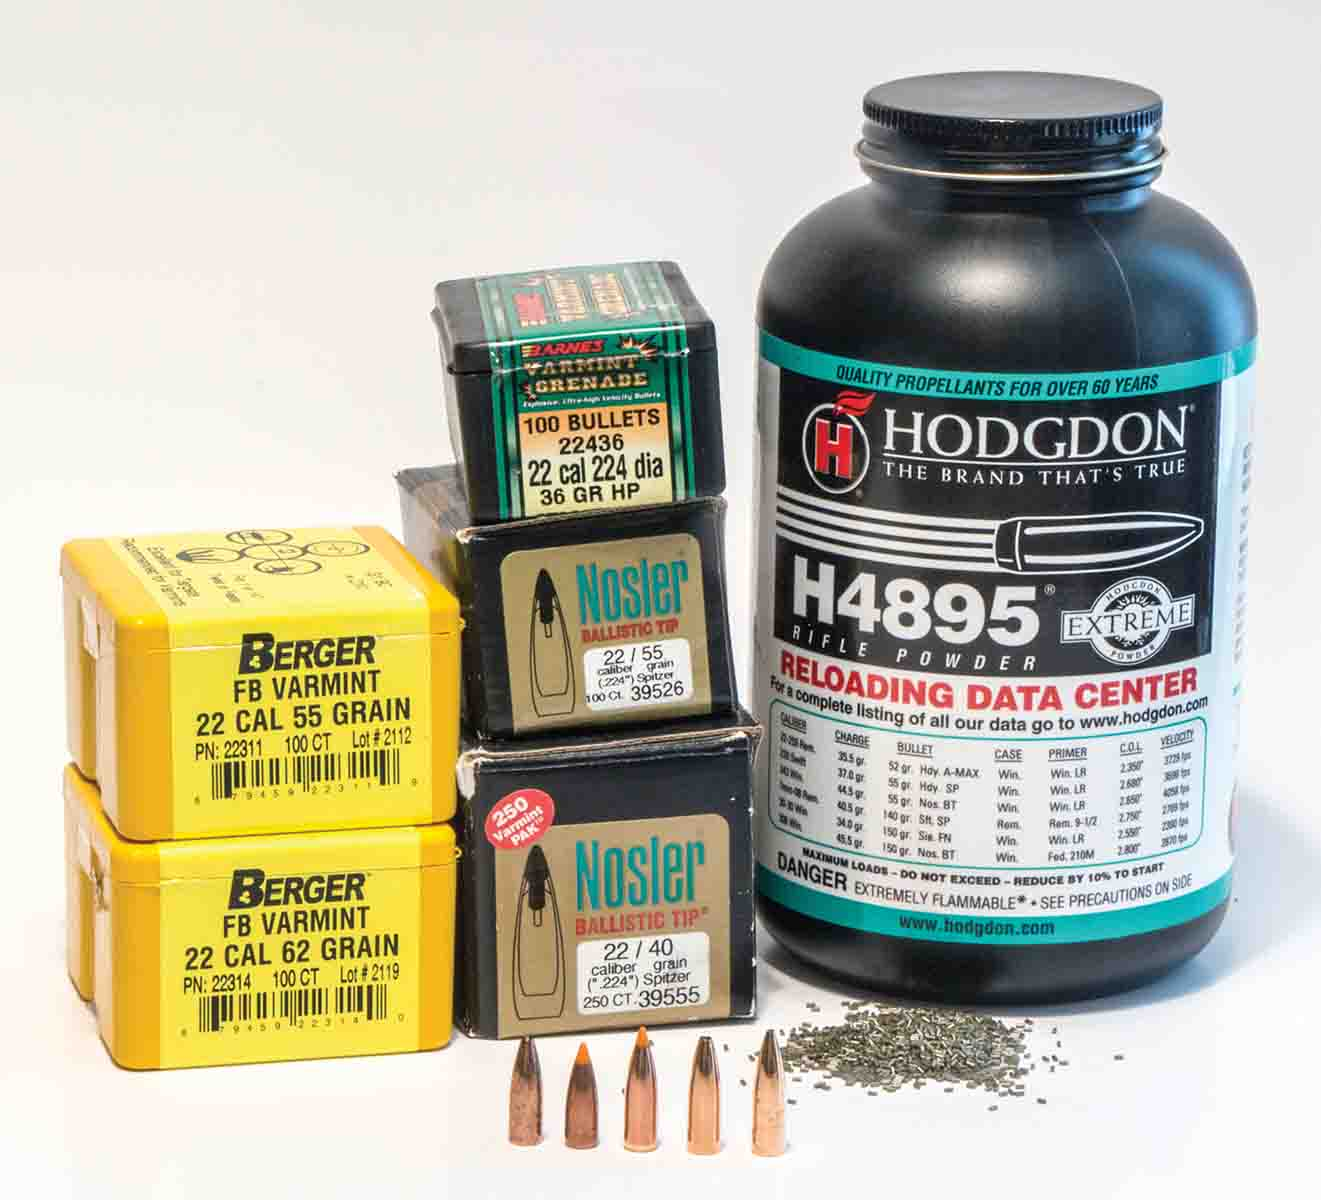 H-4895 works exceptionally well with the .22-250 Remington, as well as many other varmint cartridges, including the .223 Remington and the .243 Winchester.